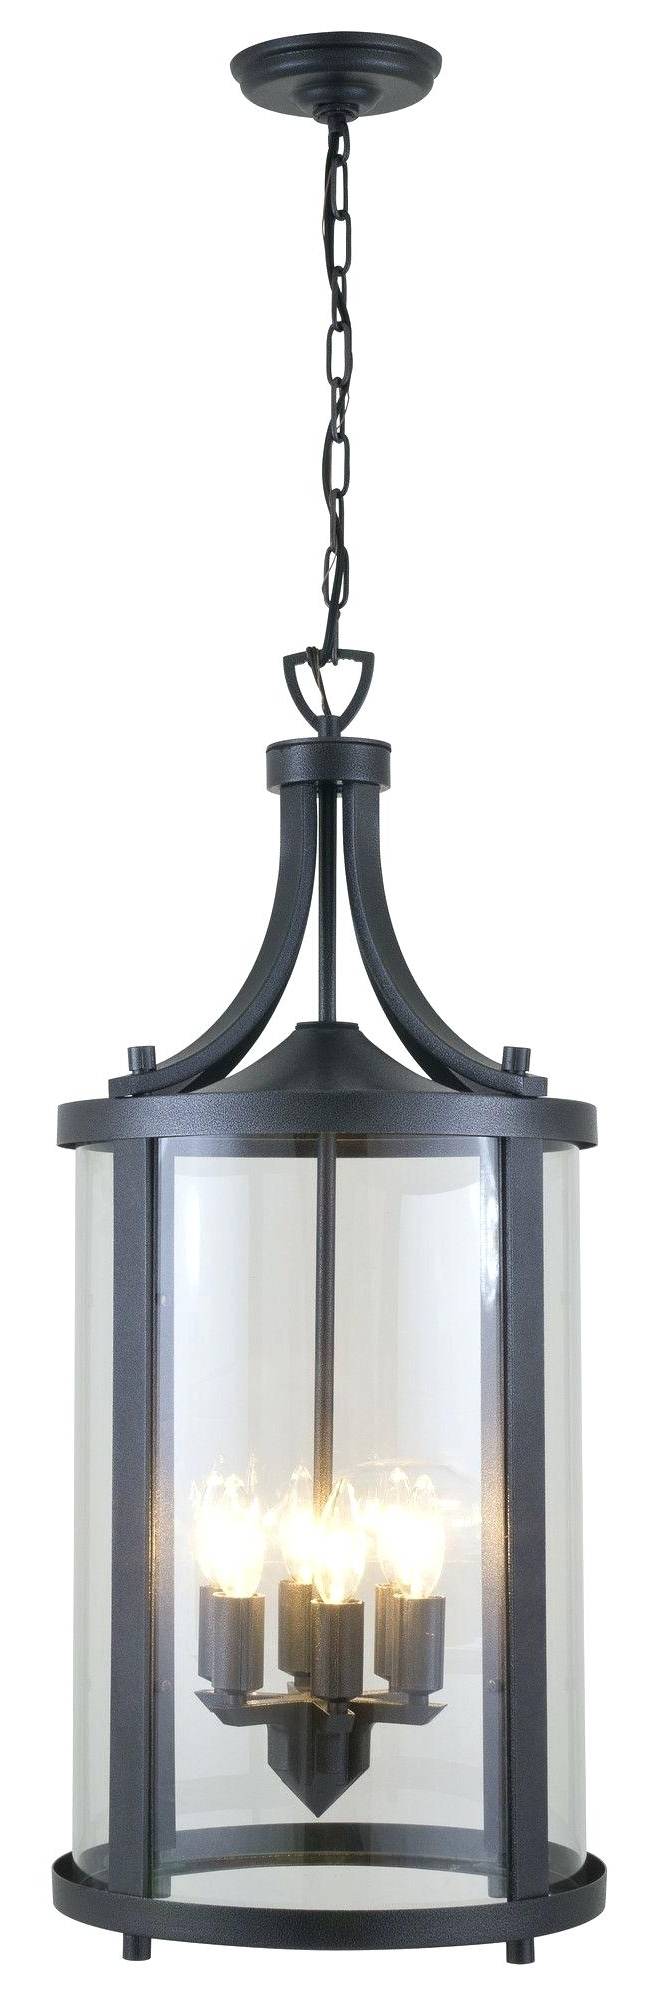 Recent Outdoor Hanging Lanterns Candle Uk For Patio – Biophilessurf Intended For Solar Powered Outdoor Hanging Lanterns (View 8 of 20)